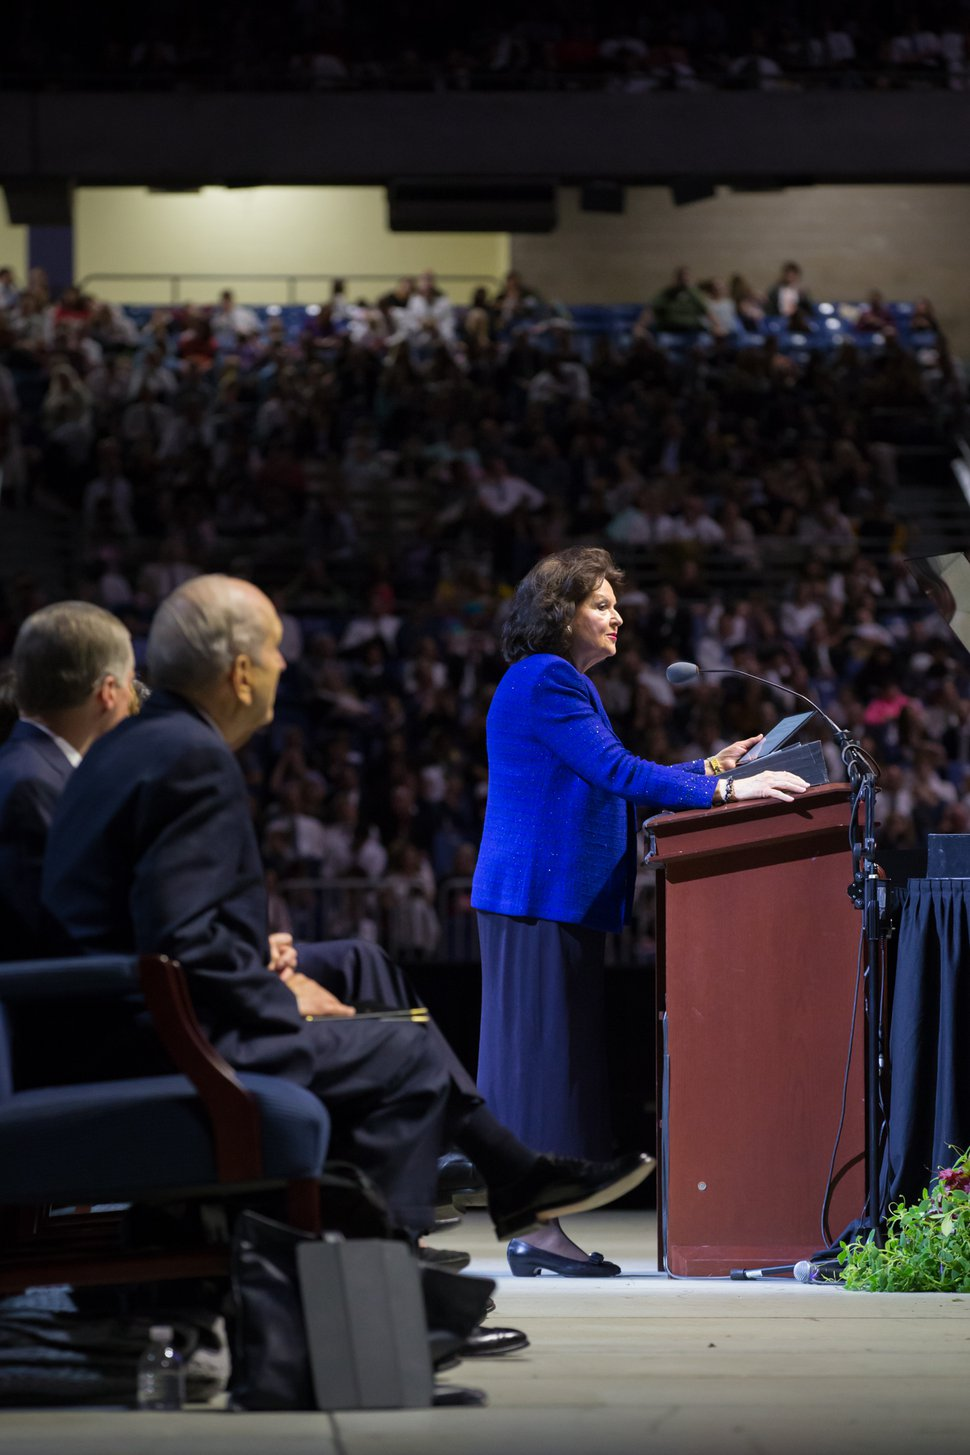 (Courtesy photo | The Church of Jesus Christ of Latter-day Saints) Wendy Nelson, wife of President Russell M. Nelson of The Church of Jesus Christ of Latter-day Saints, speaks to thousands of Latter-day Saints and invited friends who gathered for a special devotional at the Alamodome in San Antonio on Sunday, Nov. 18, 2018.